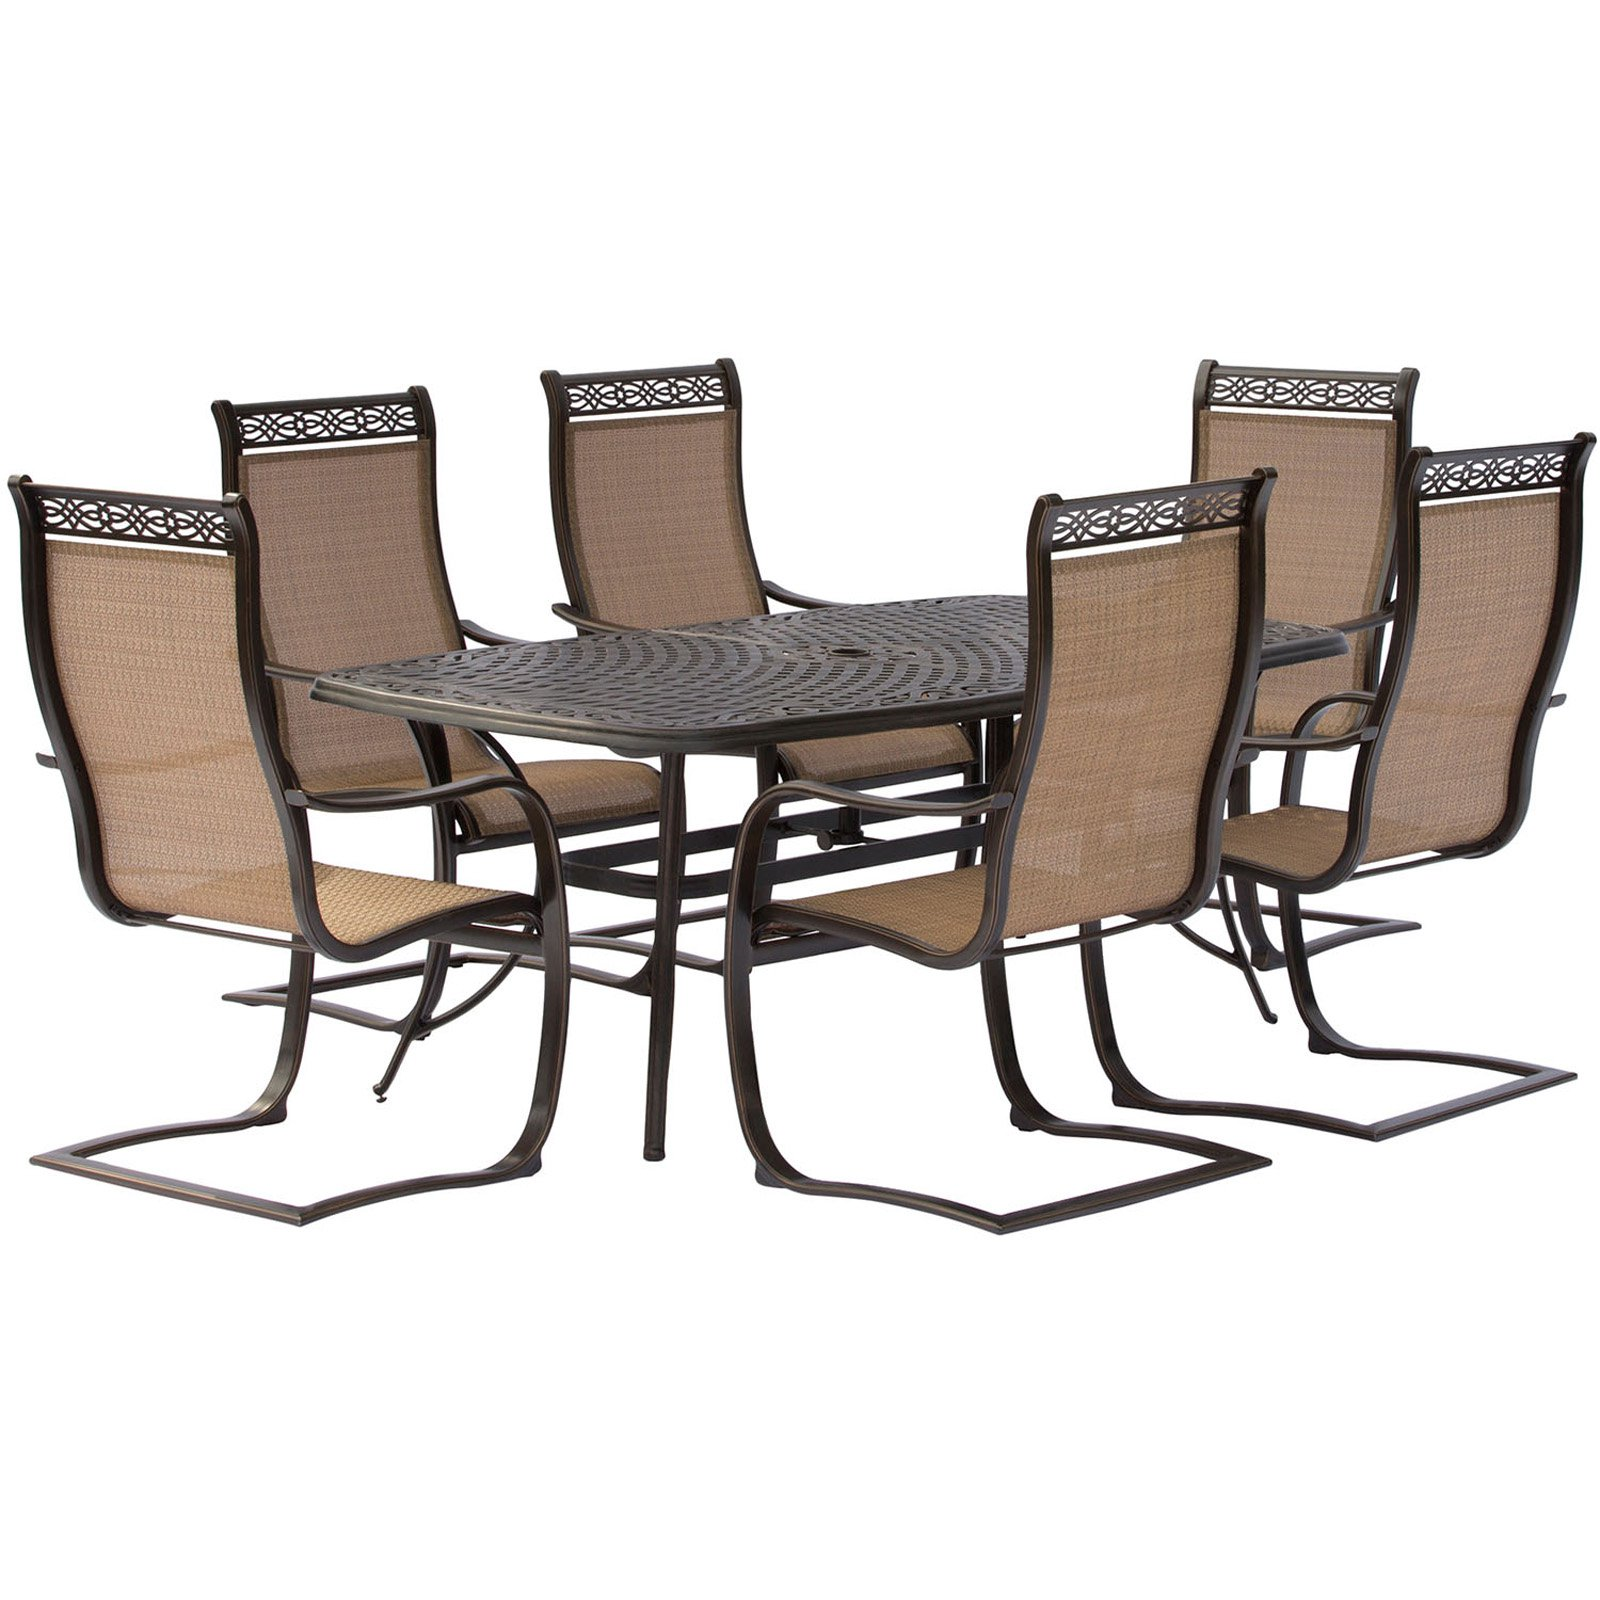 Hanover Manor 7-Piece Outdoor Dining Set with C-Spring Chairs